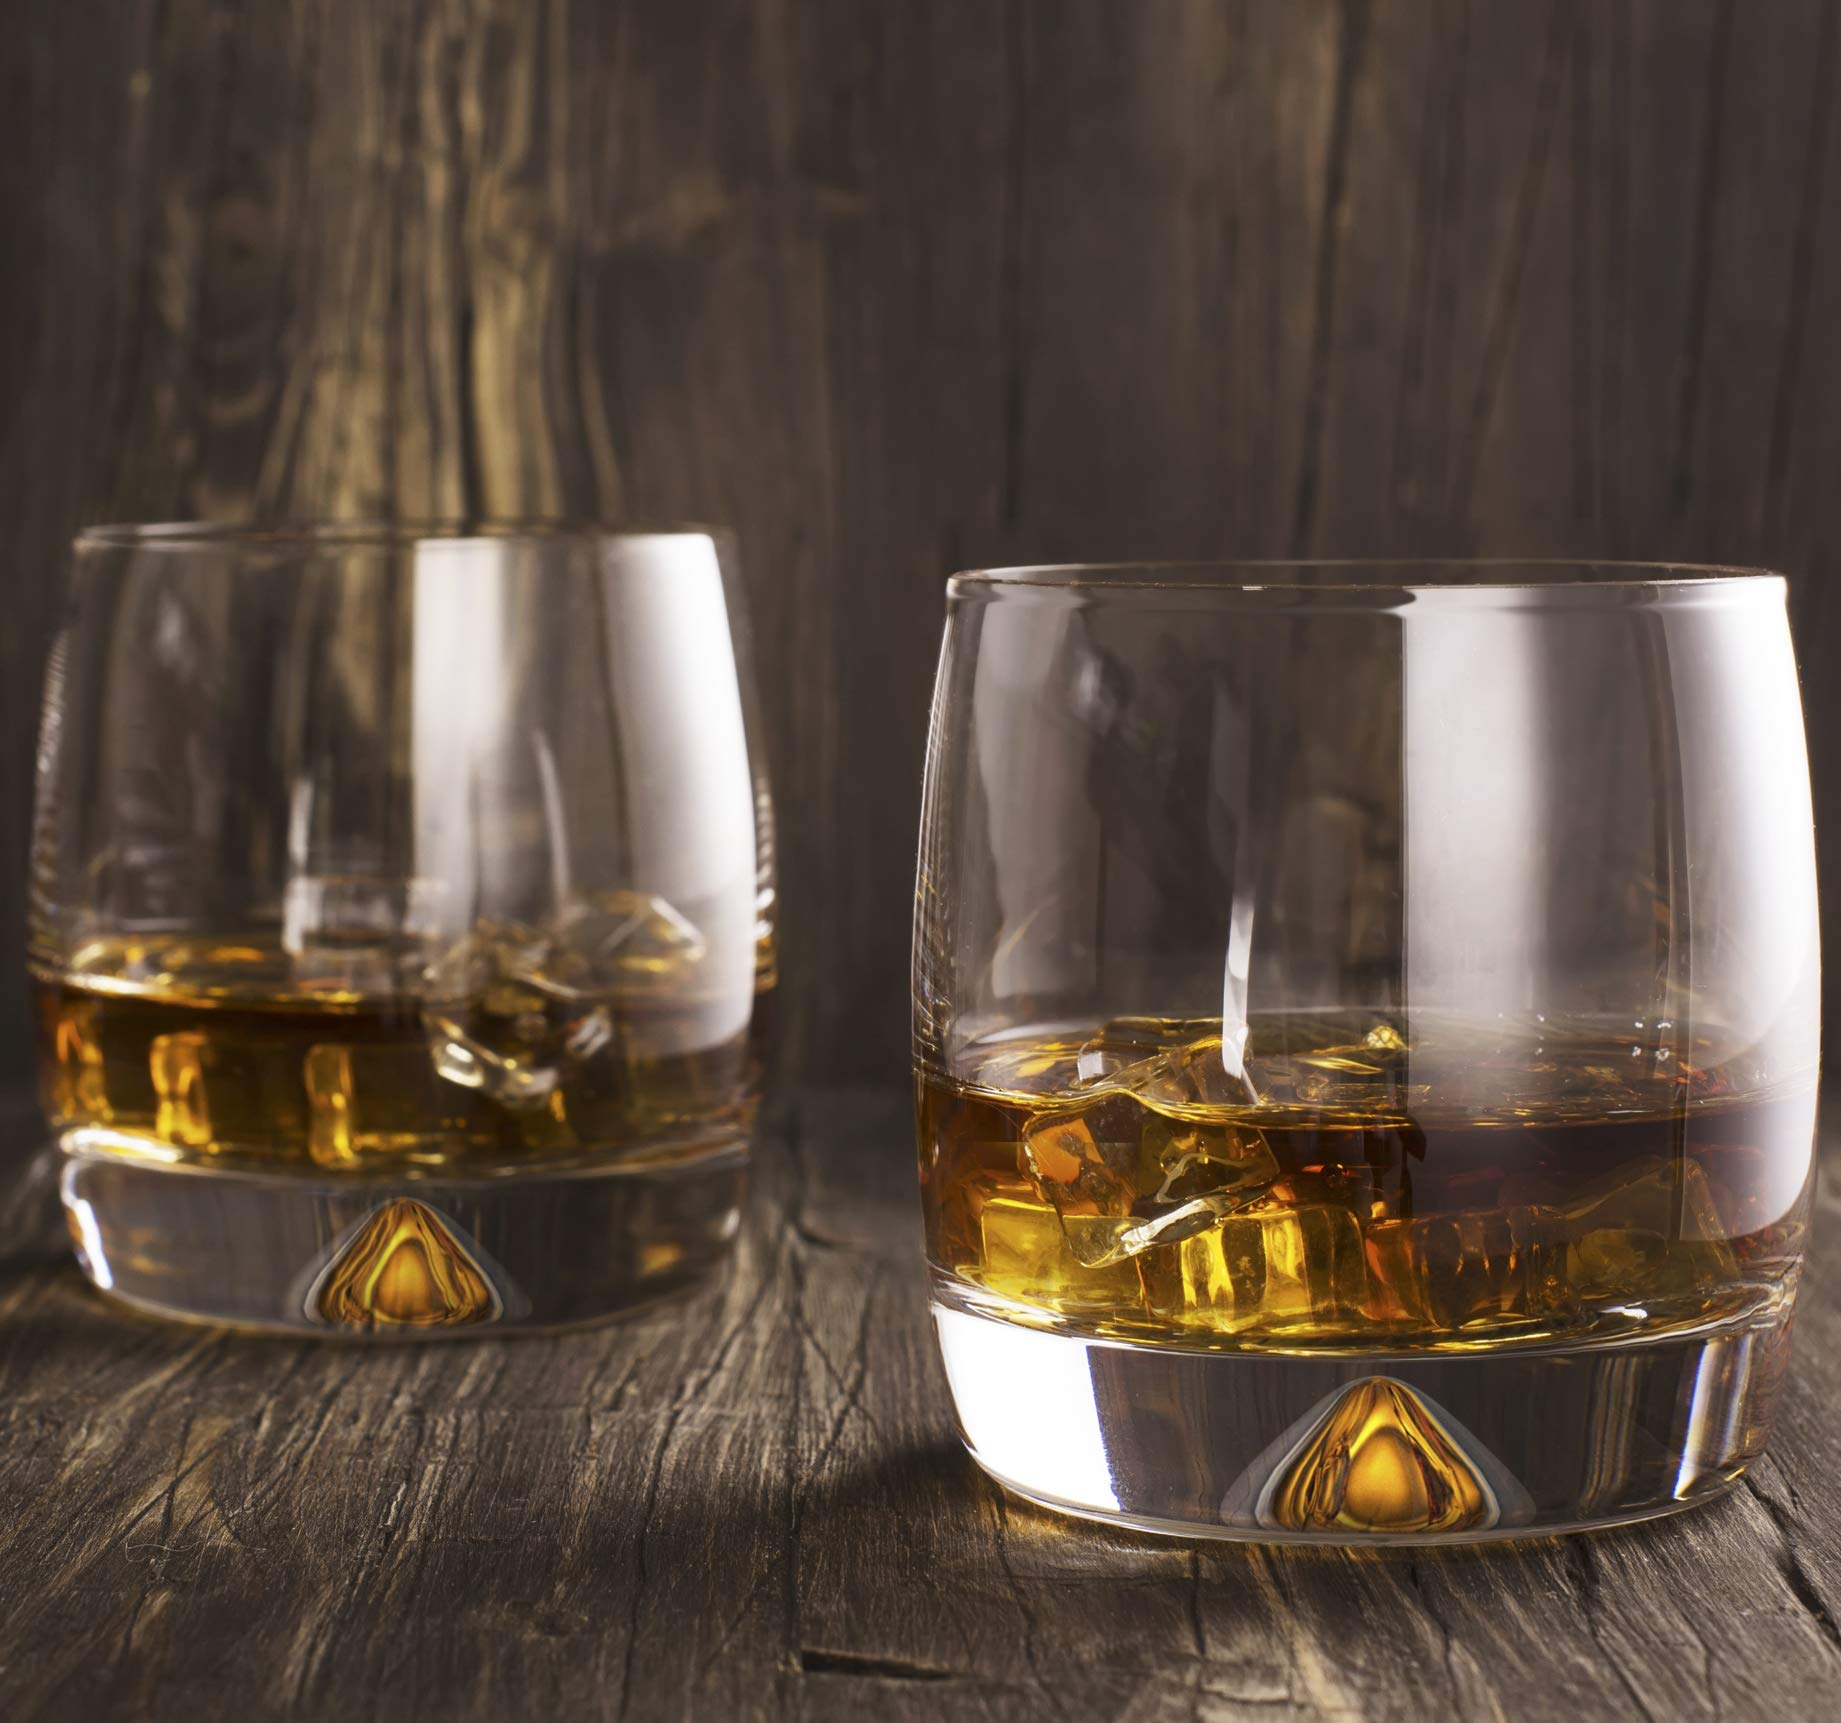 Premium Whiskey Glasses - Large - 12oz Set of 2 - Lead Free Hand Blown Crystal - Thick Weighted Bottom - Seamless Handmade Design - Perfect for Scotch, Bourbon, Manhattans, Old Fashioned's, Cocktails. by Mofado (Image #4)